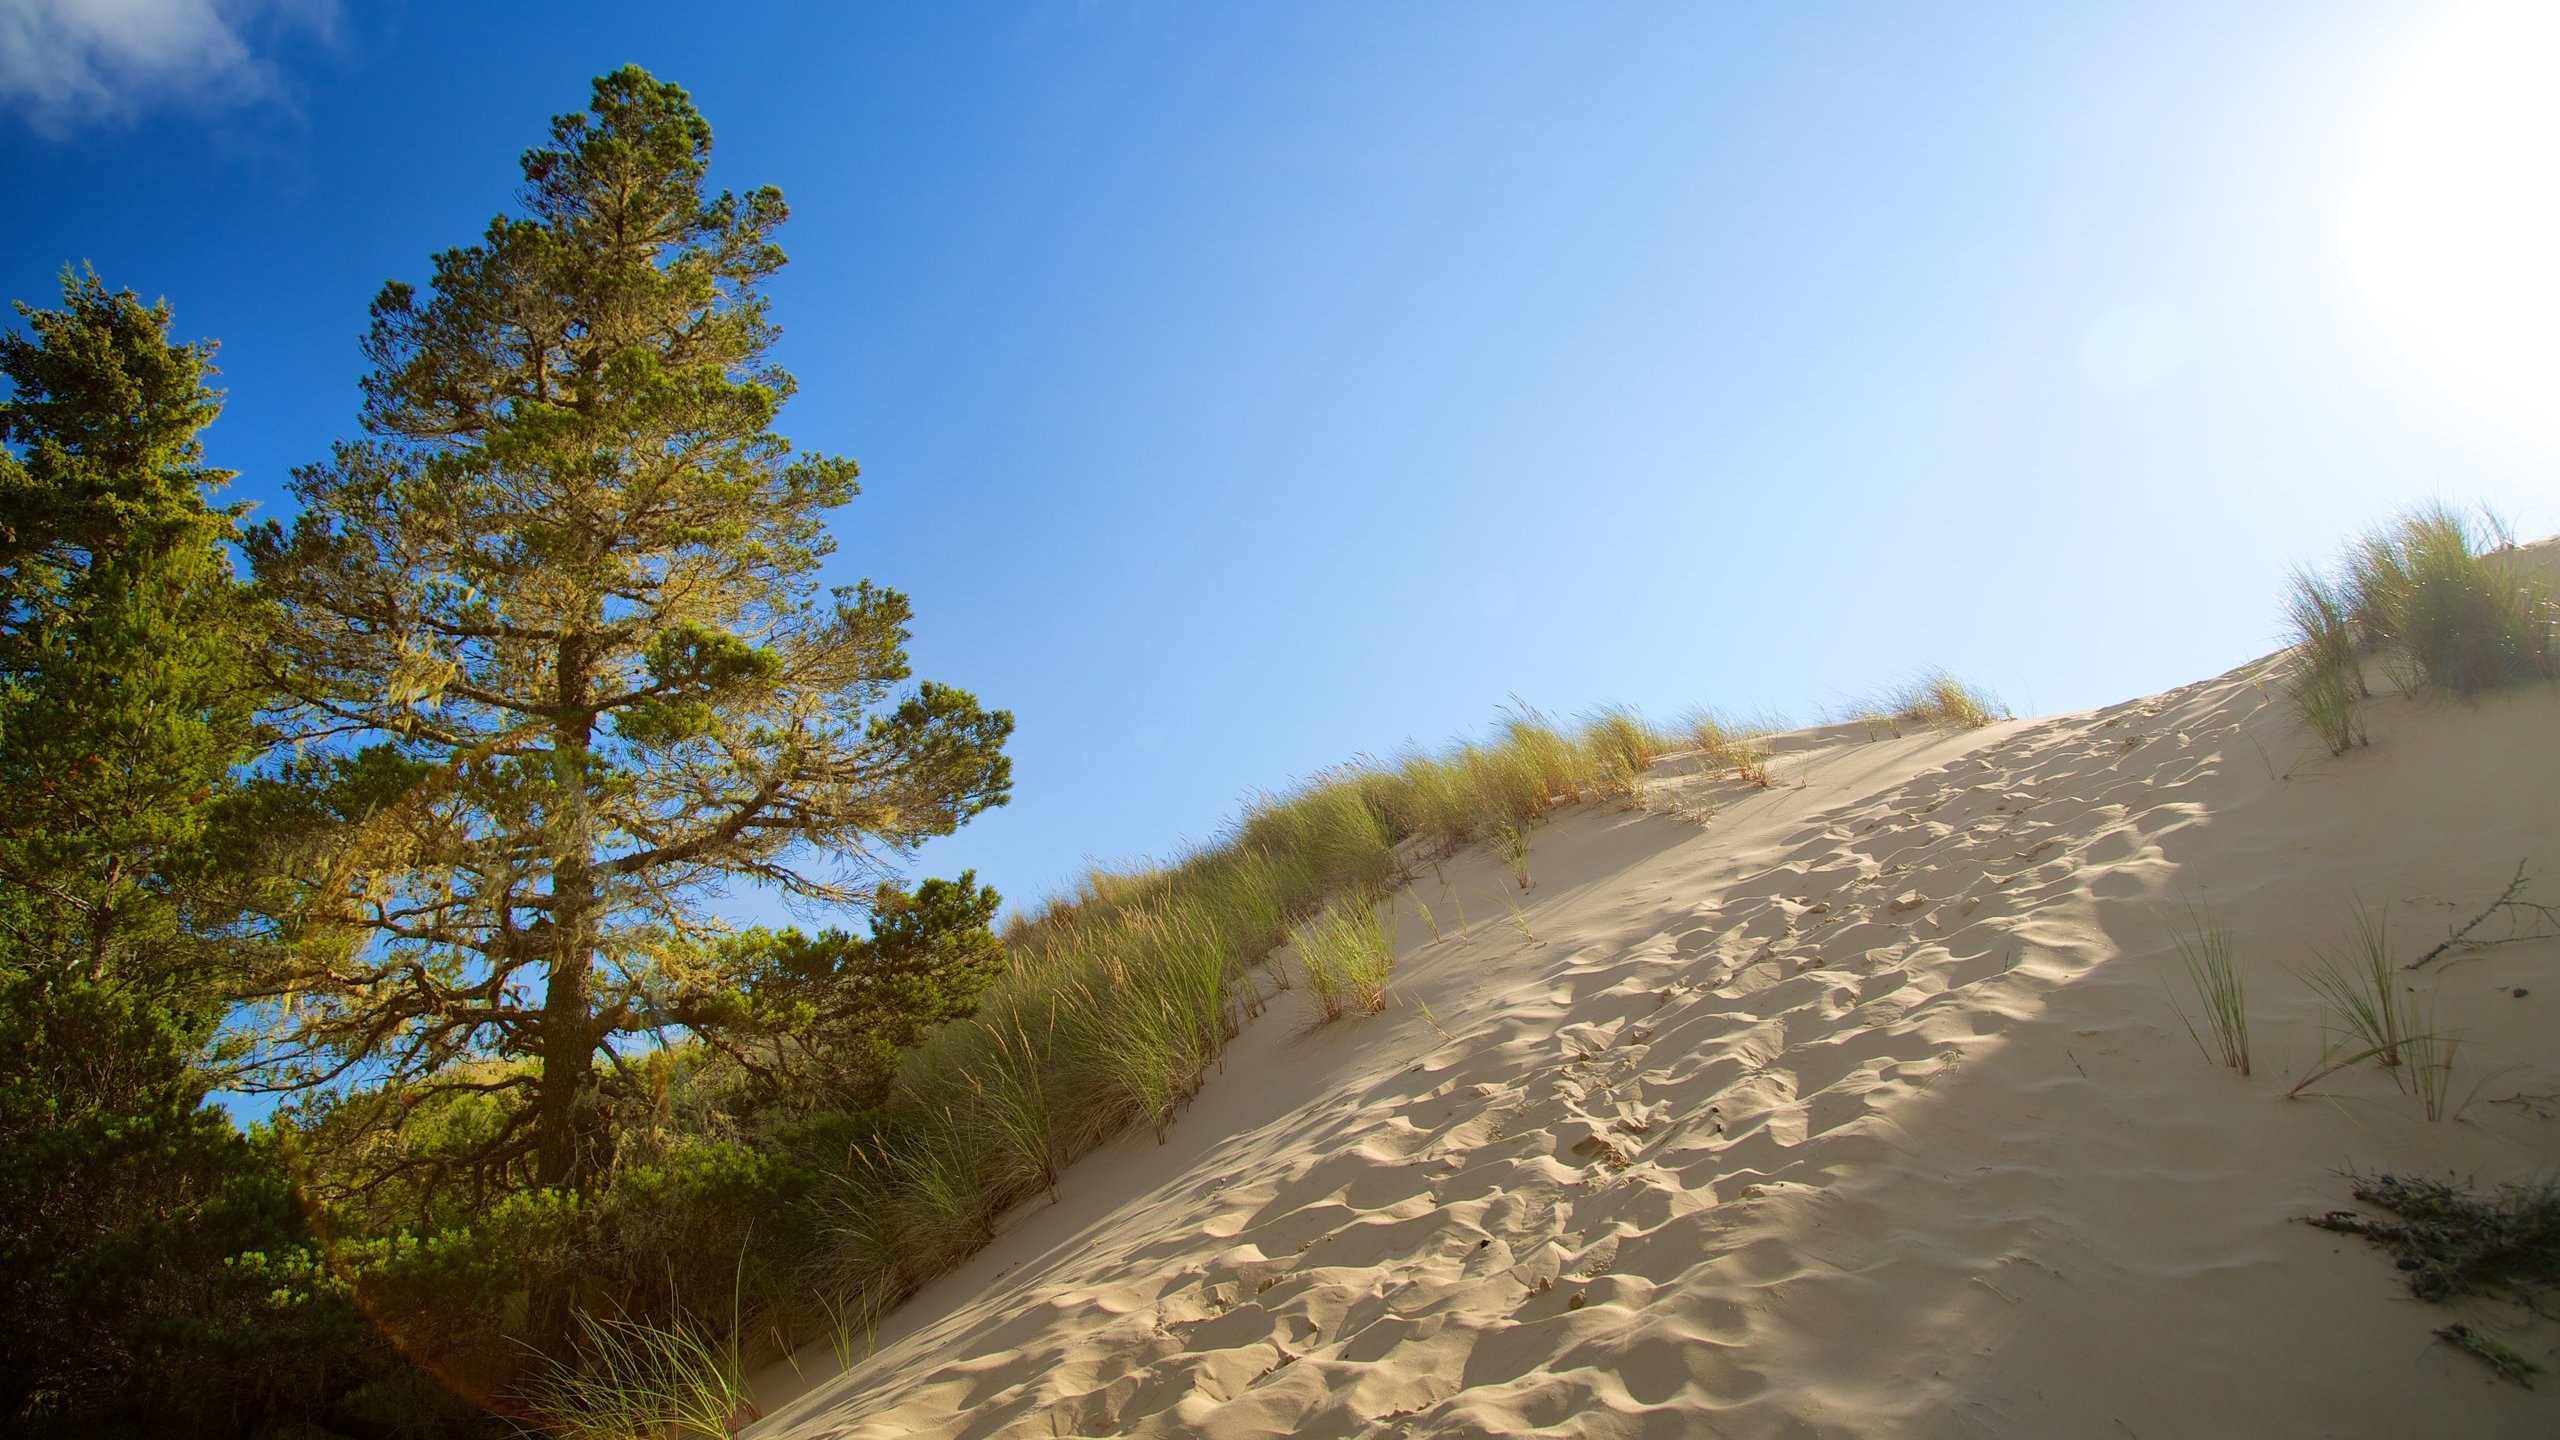 Bordered by the Pacific Ocean and surrounded by lakes and lush forests, this expanse of towering sand dunes is a truly spectacular sight.